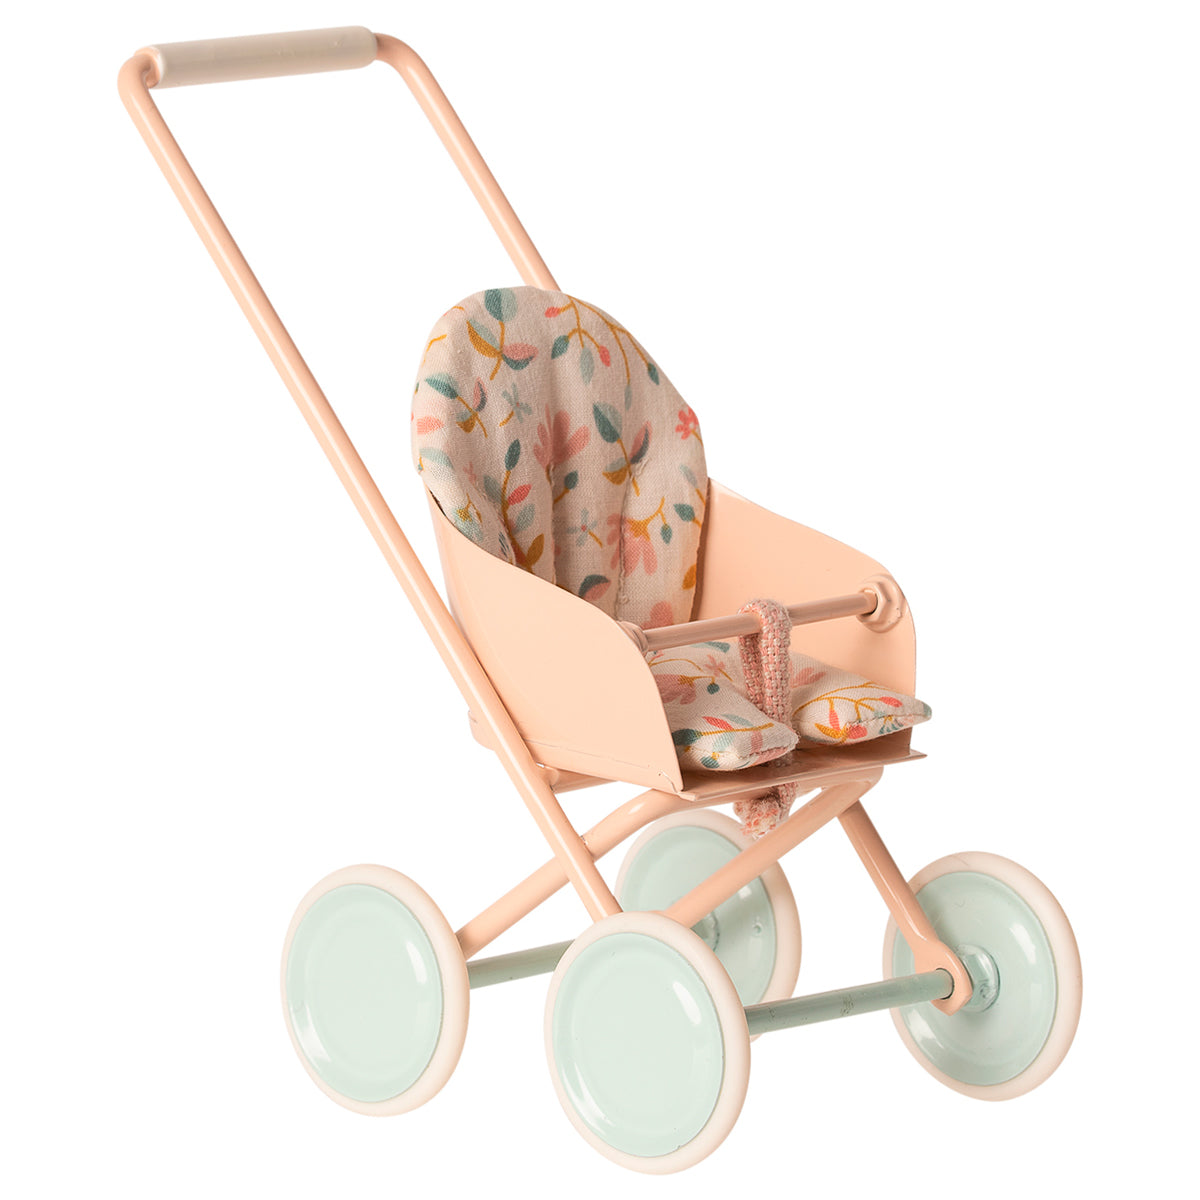 Stroller micro maileg miniature dolls house furniture